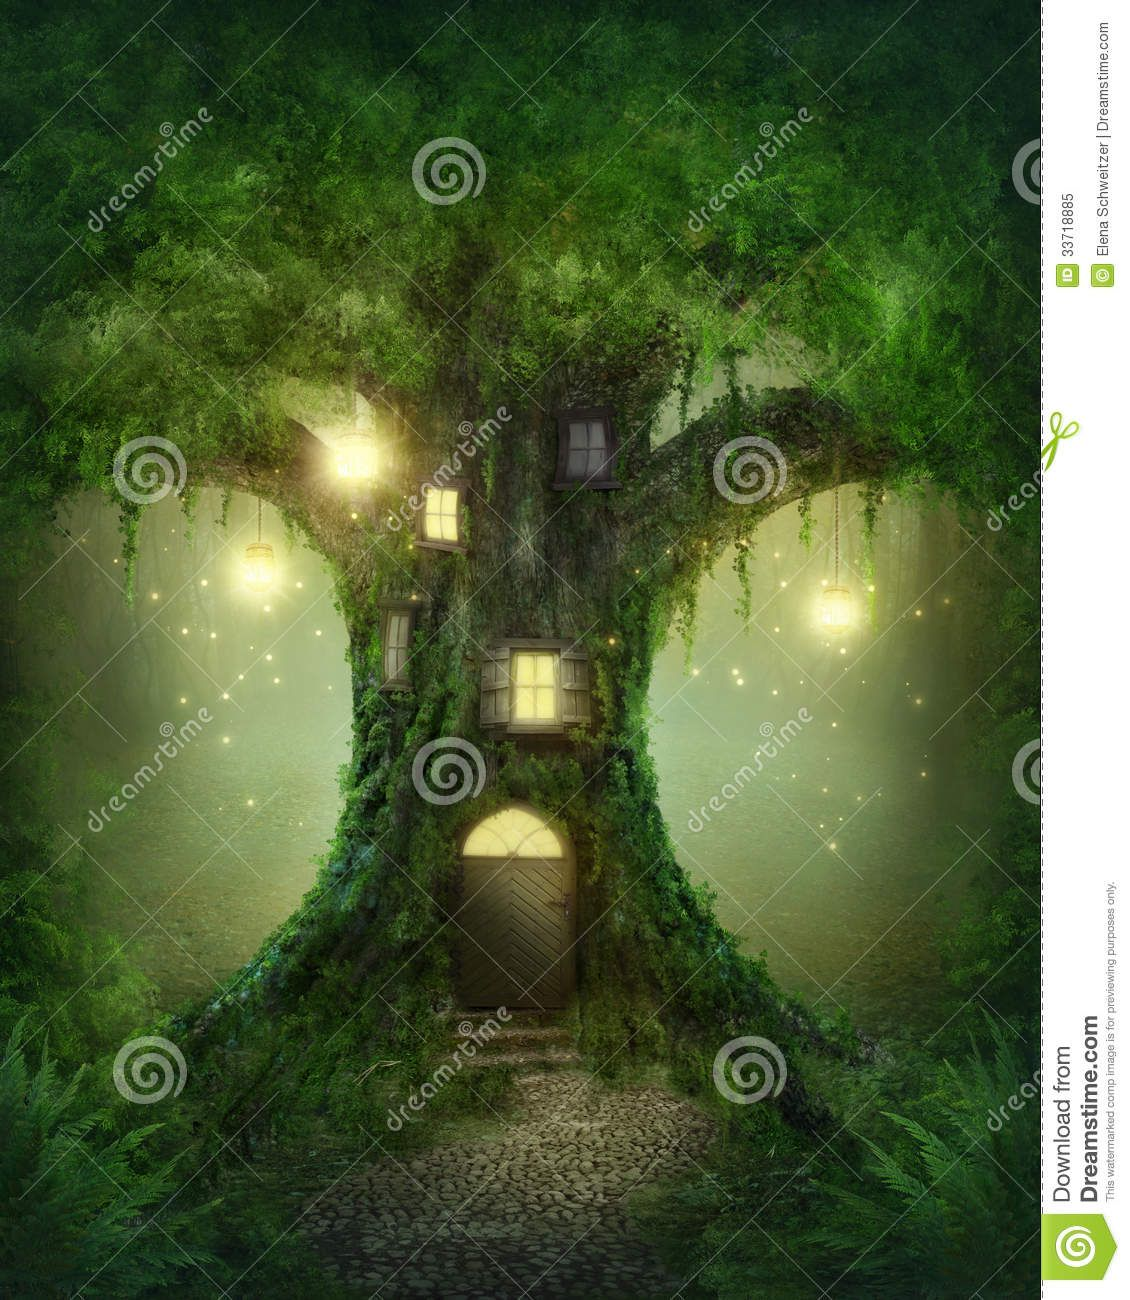 You can see the tree which this tree house castle clings to through - Fantasy Description The Wallpaper Above Is Fantasy House Tree Wallpaper In Mondi Immaginari Pinterest Fantasy Pictures Artwork And Paintings